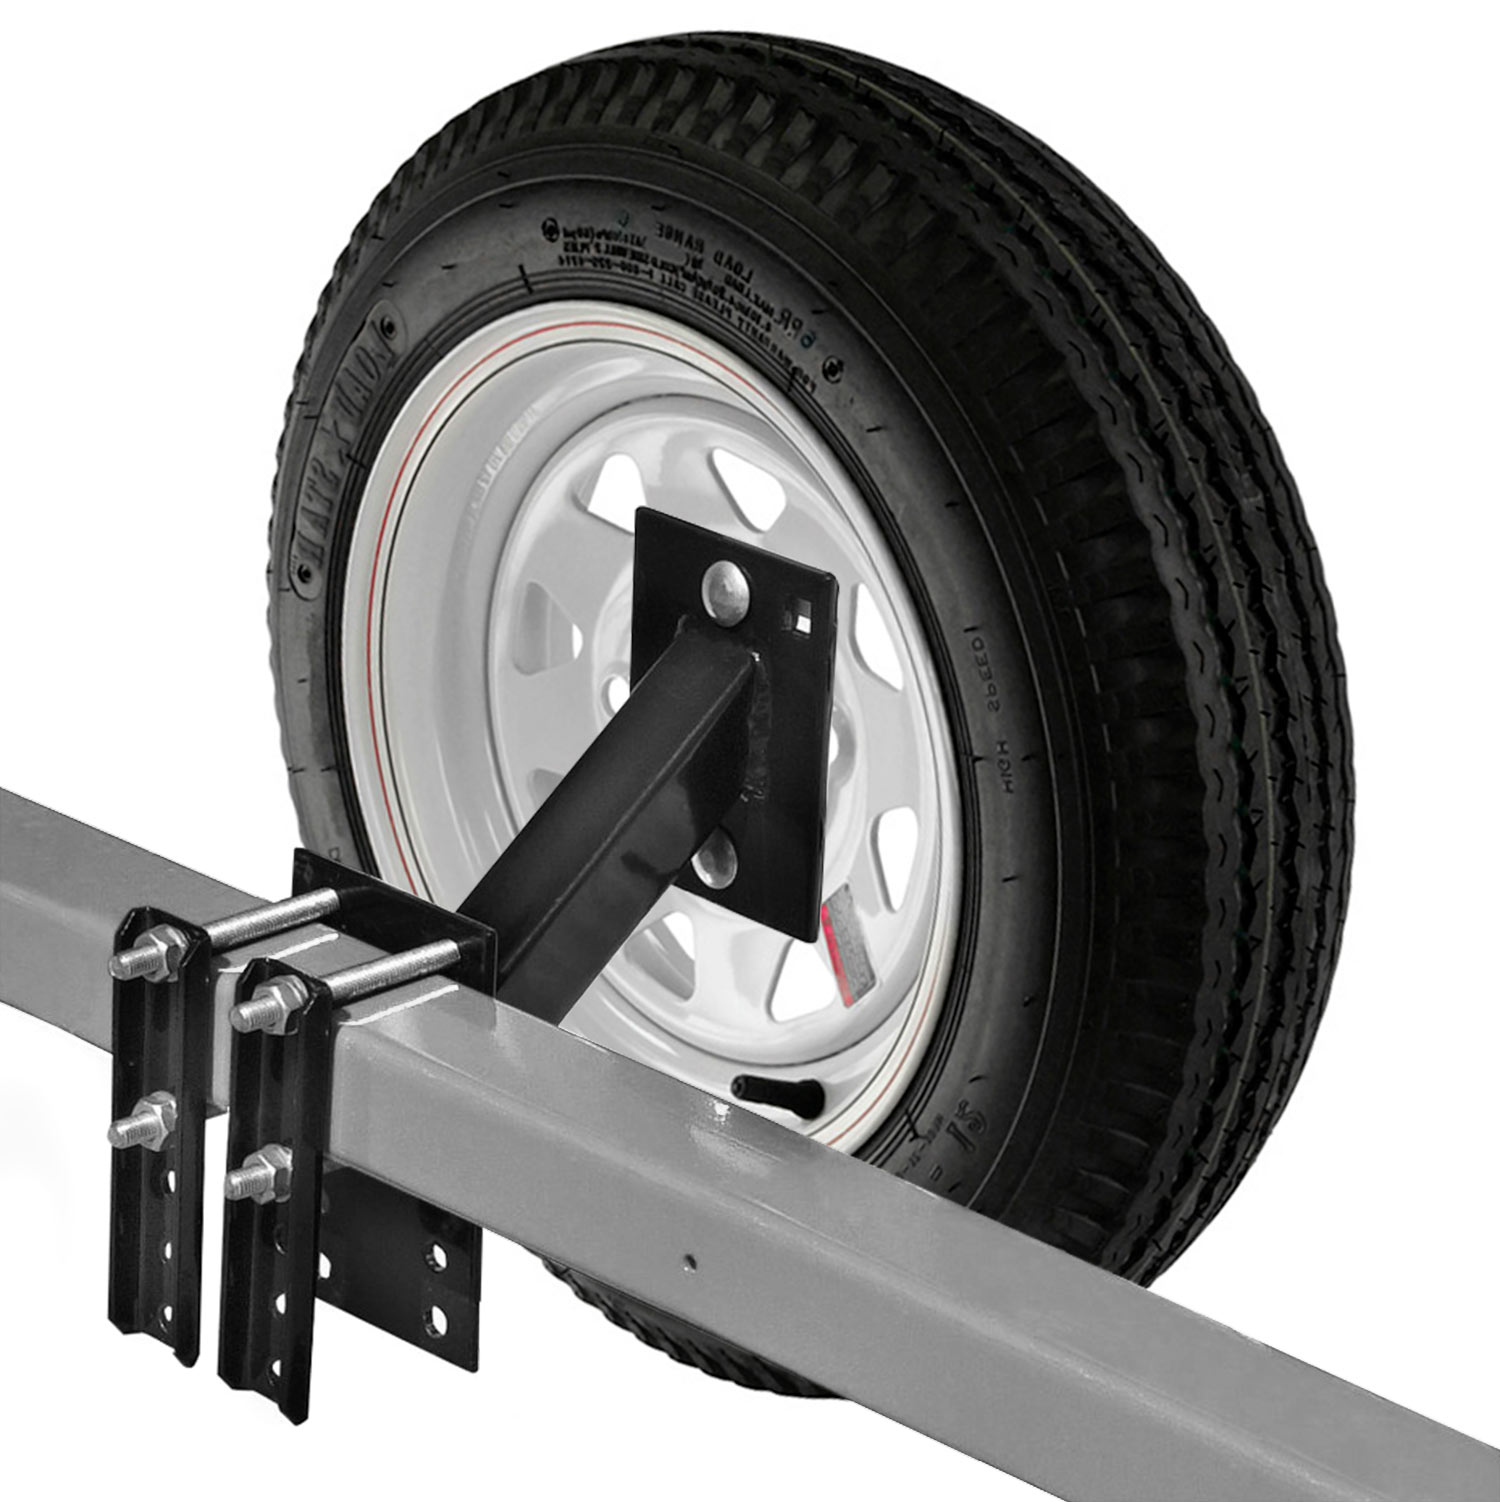 Spare Tire Carrier For Boat And Utility Trailer Mount Return From Wiring A To Trailers Fits 4 Or 5 Lug Wheel No Drill Bracket